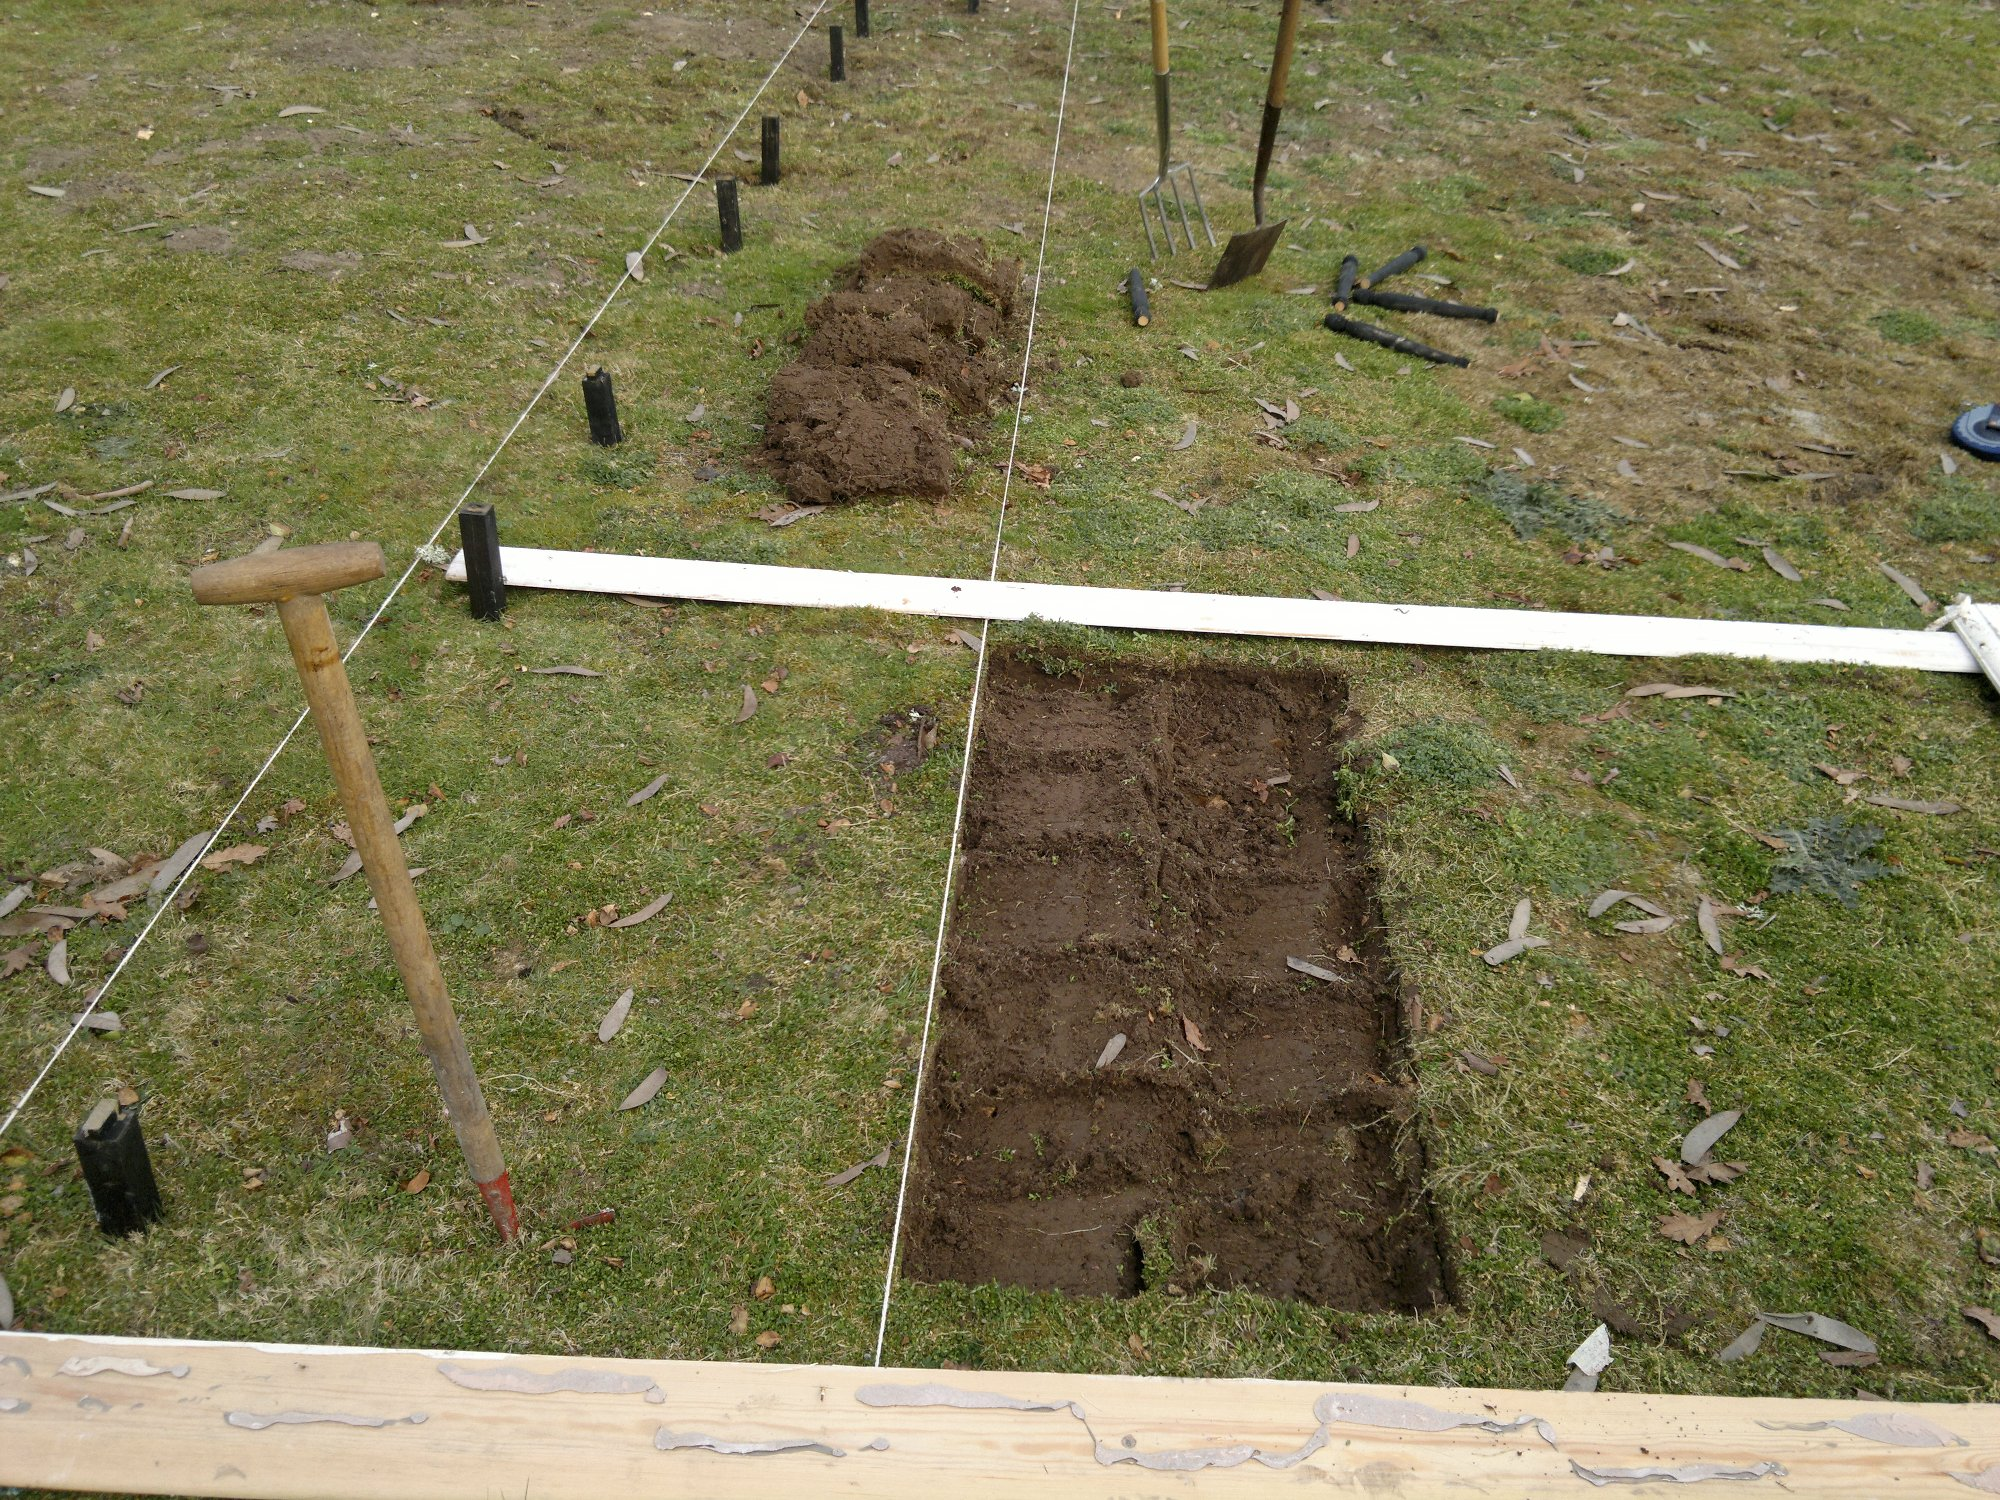 Trenching part 1: removal of turf